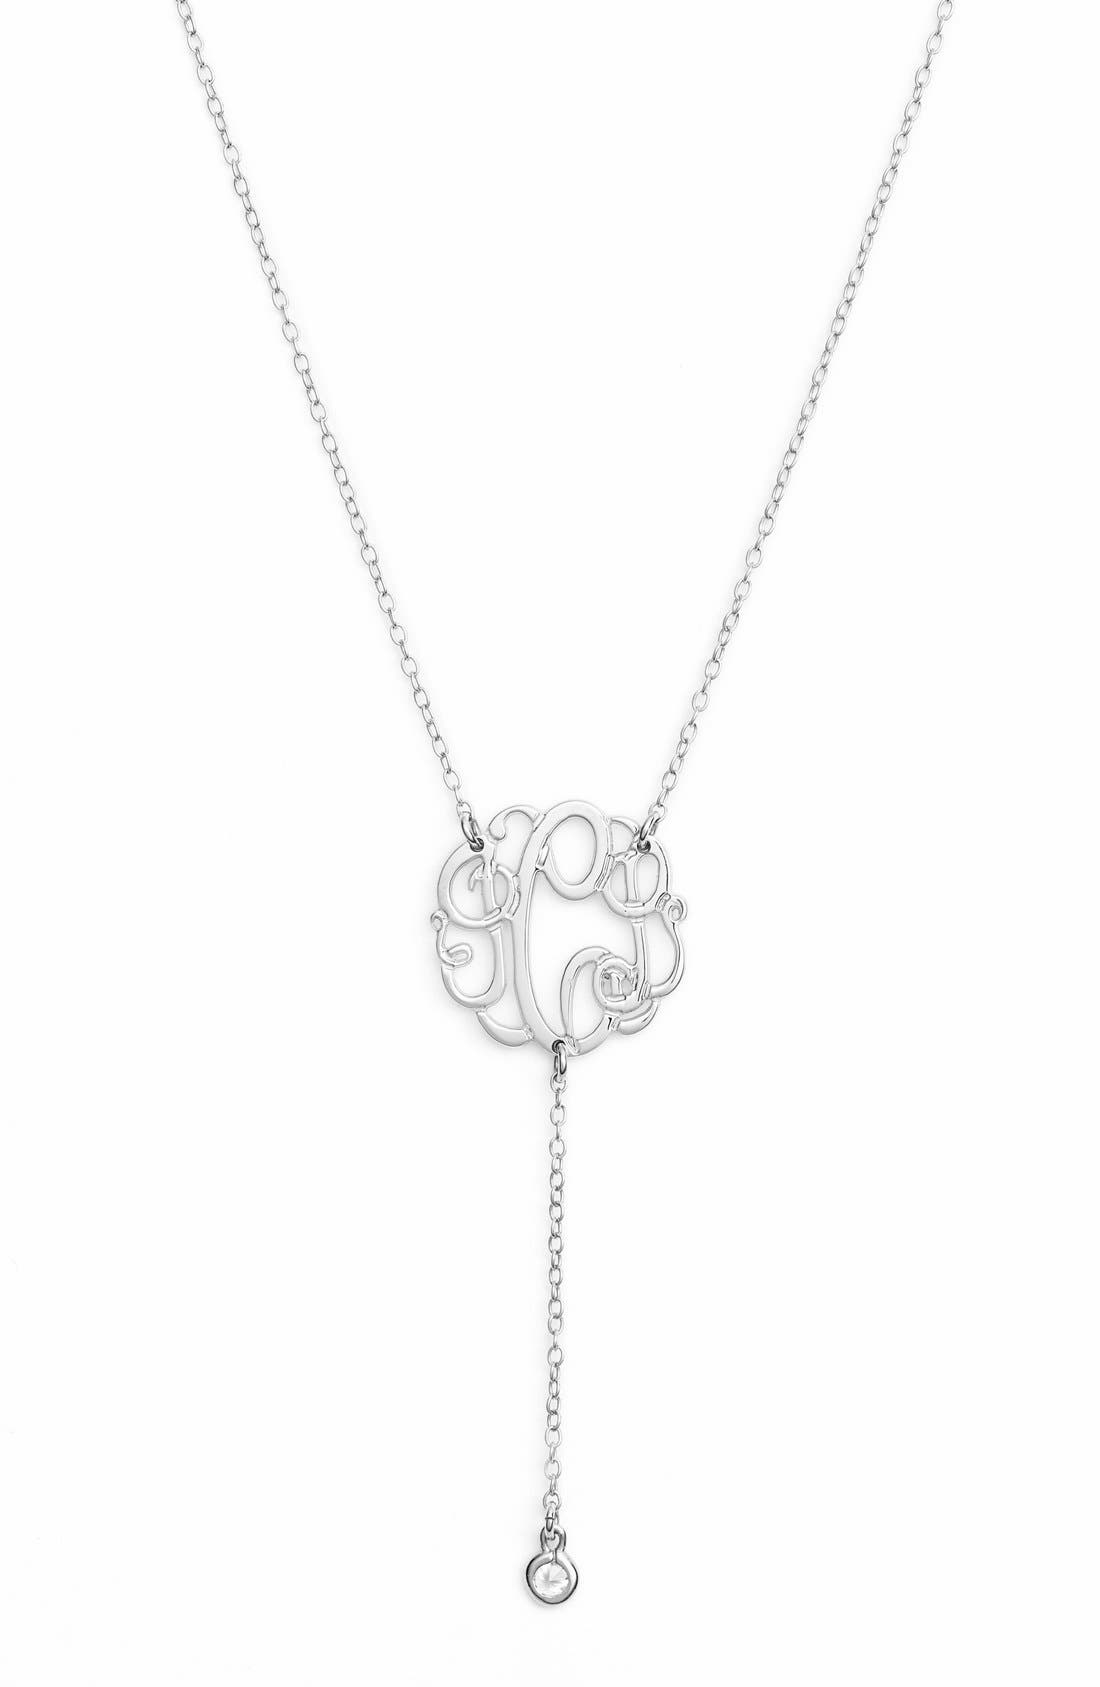 Personalized Three Initial Y-Necklace,                         Main,                         color, 040